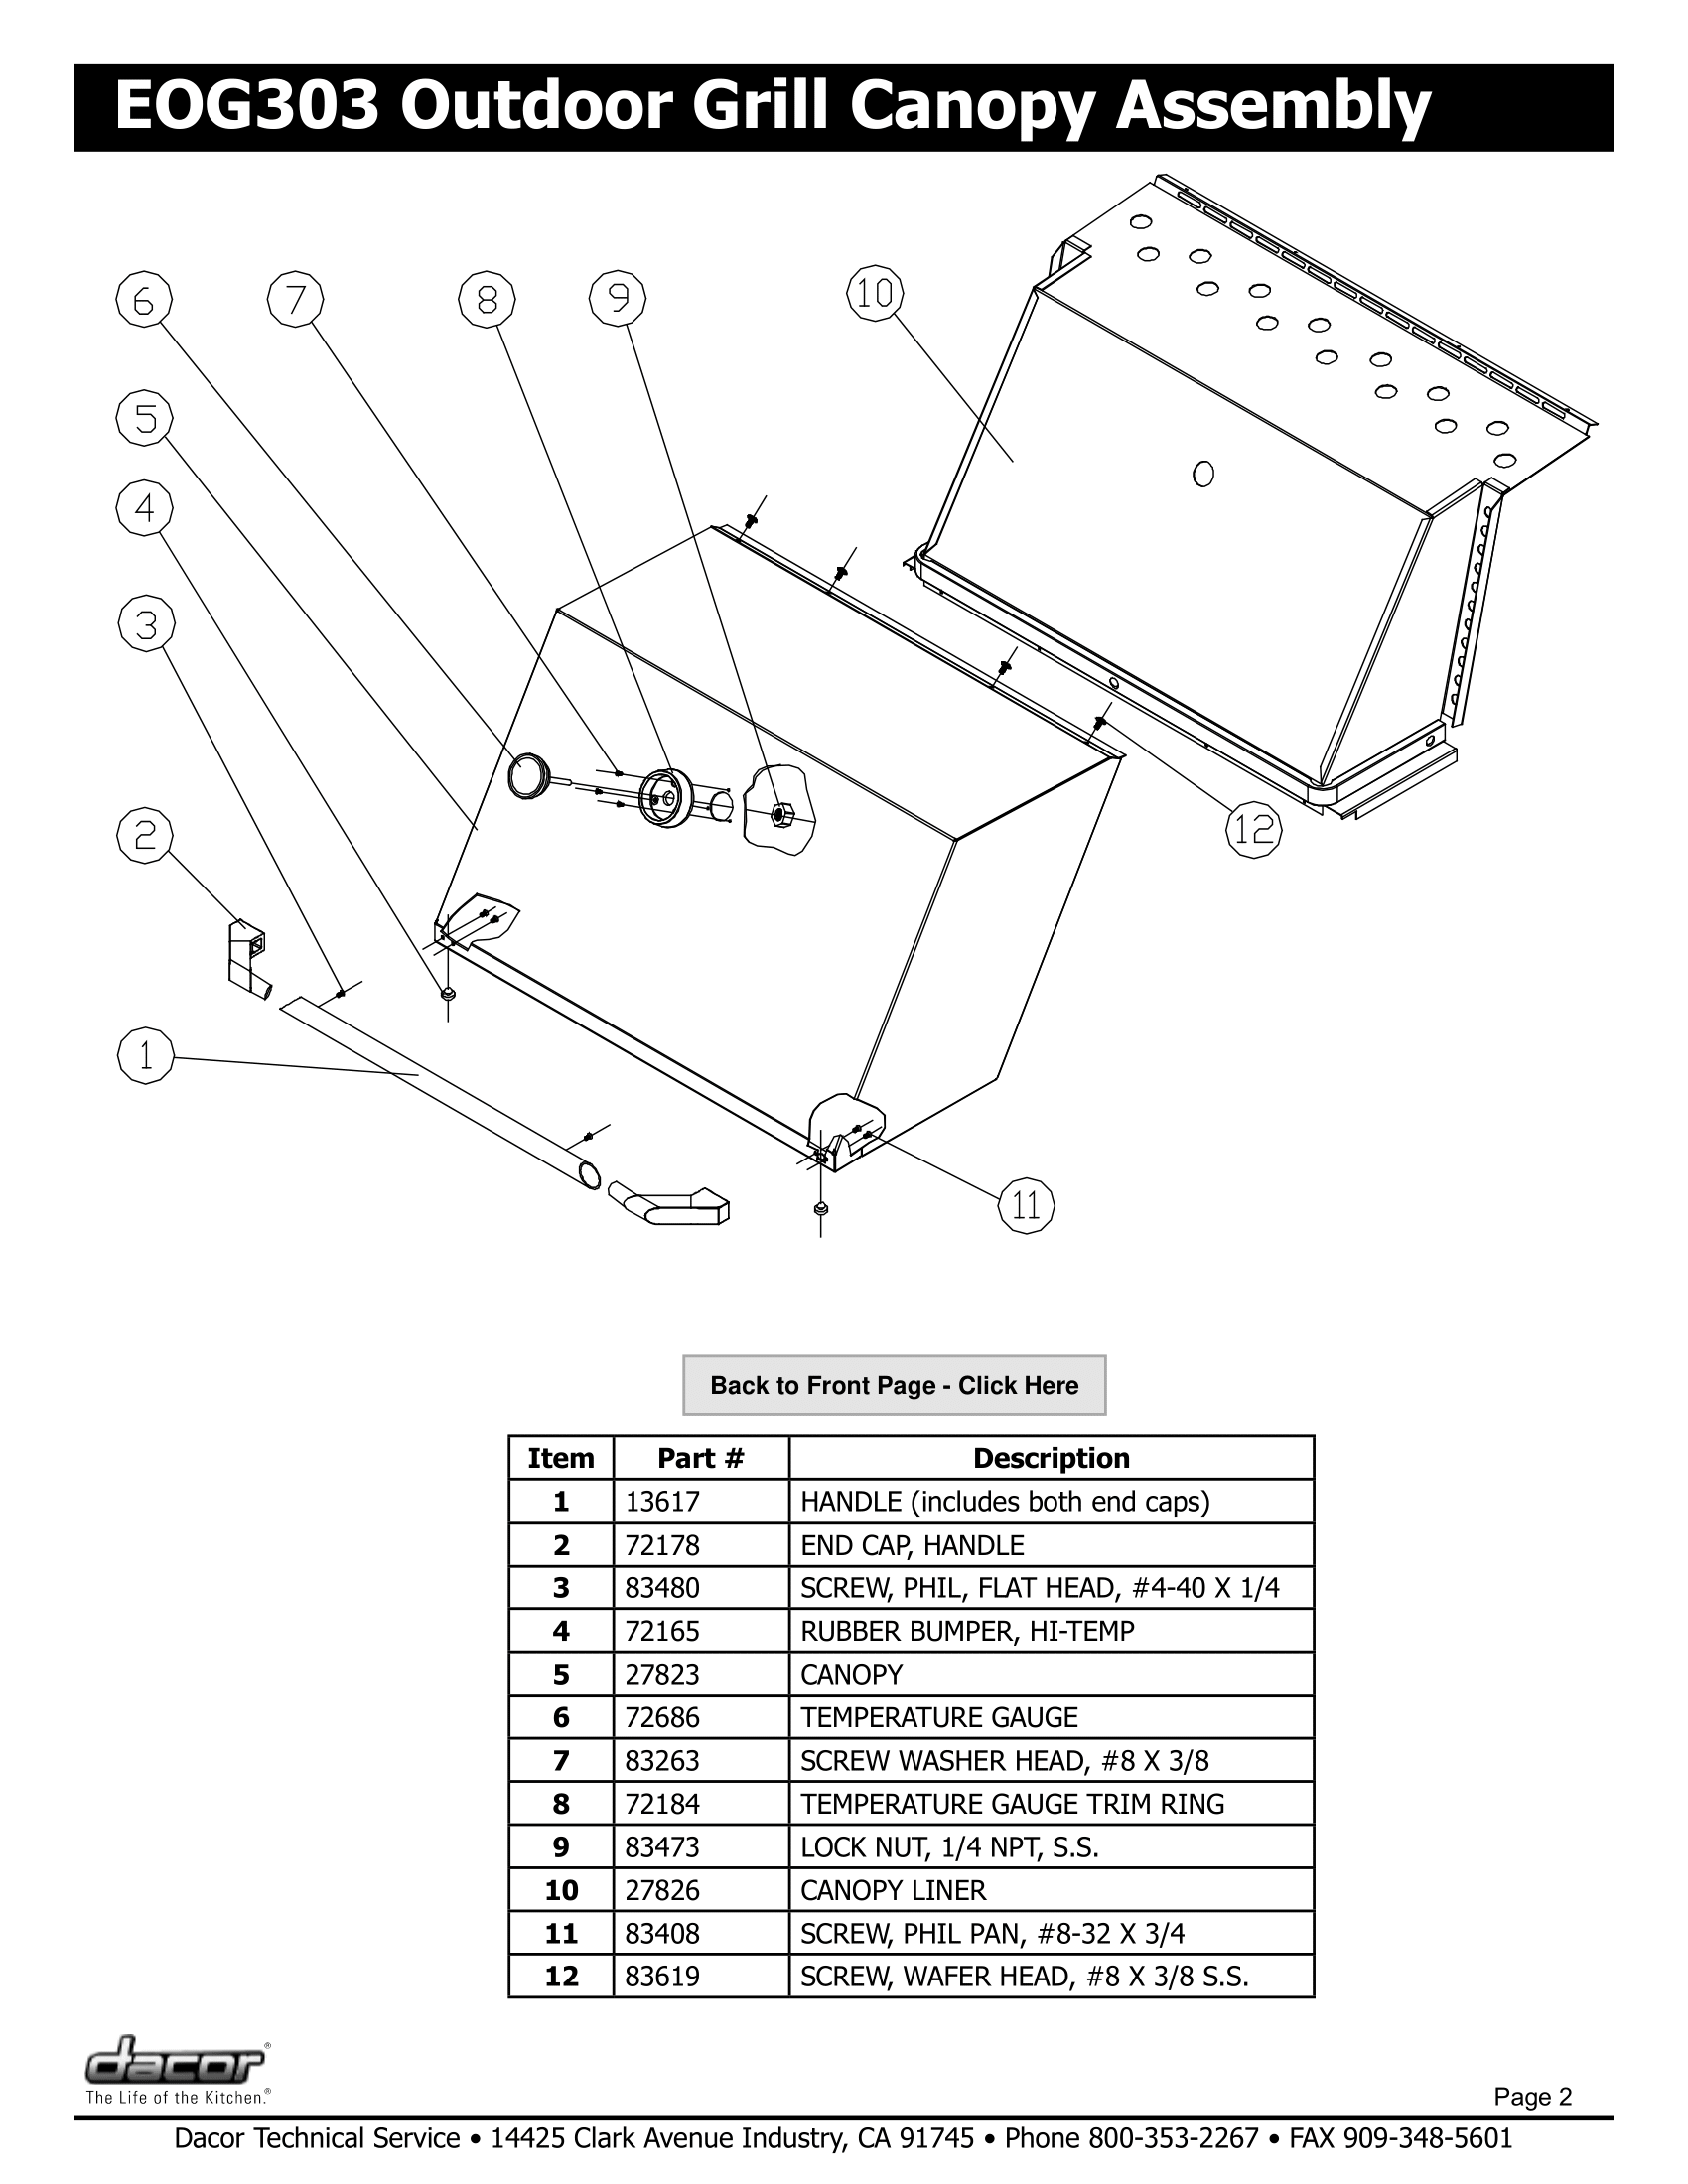 Dacor EOG303 Canopy Assembly Schematic